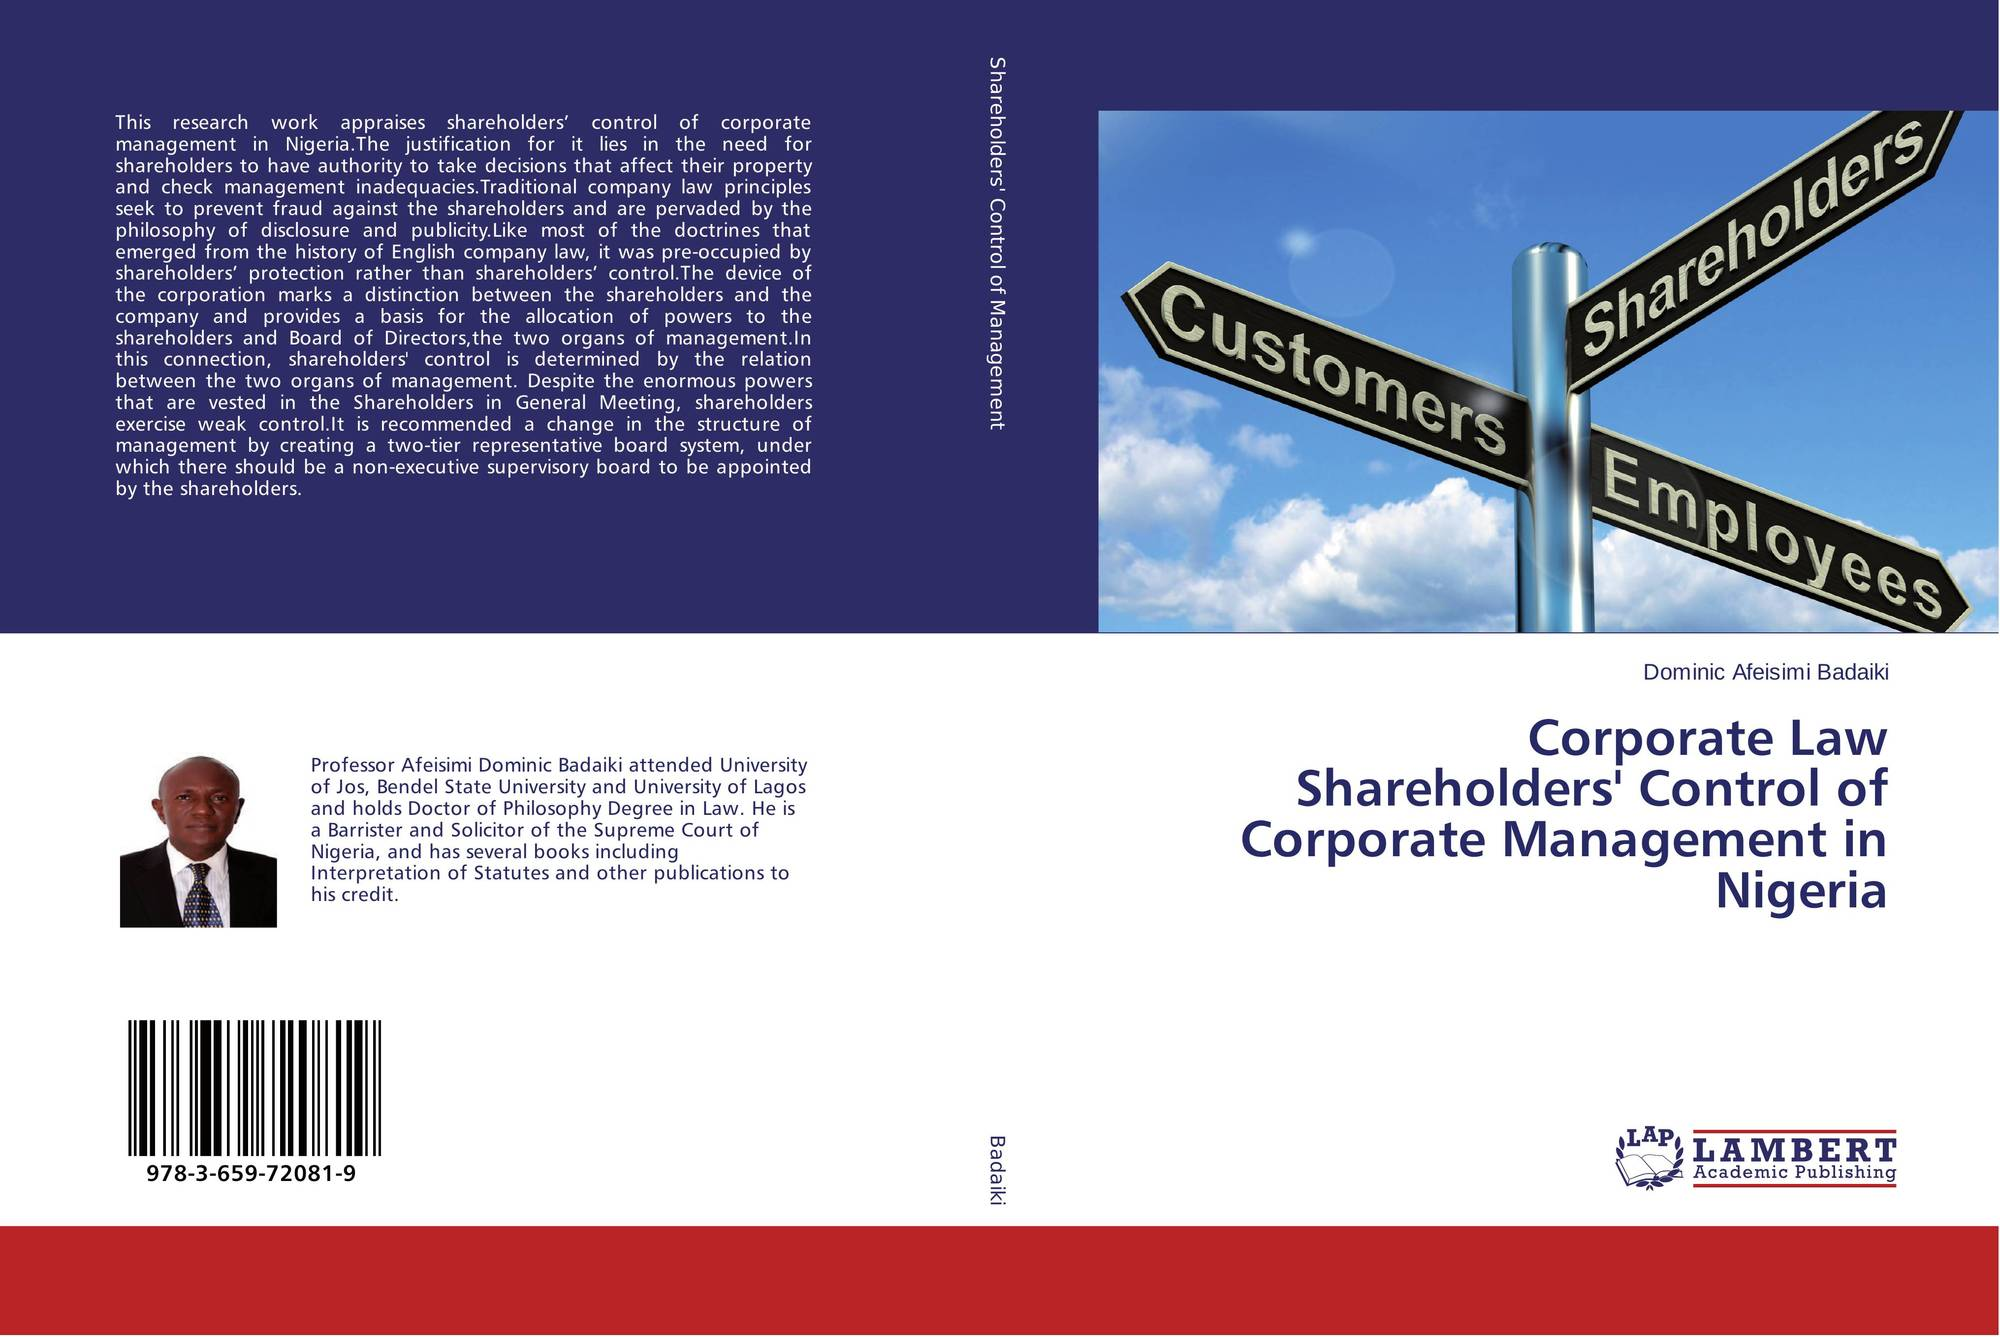 why corporate governance can prevent corporate failure This solution explains why corporate governance fails, and lists some of the indulgences some managers have given to themselves  is the lack of discipline and corrective/preventive policies in the organization that lead to governance failures a recent example of corporate failure is the.